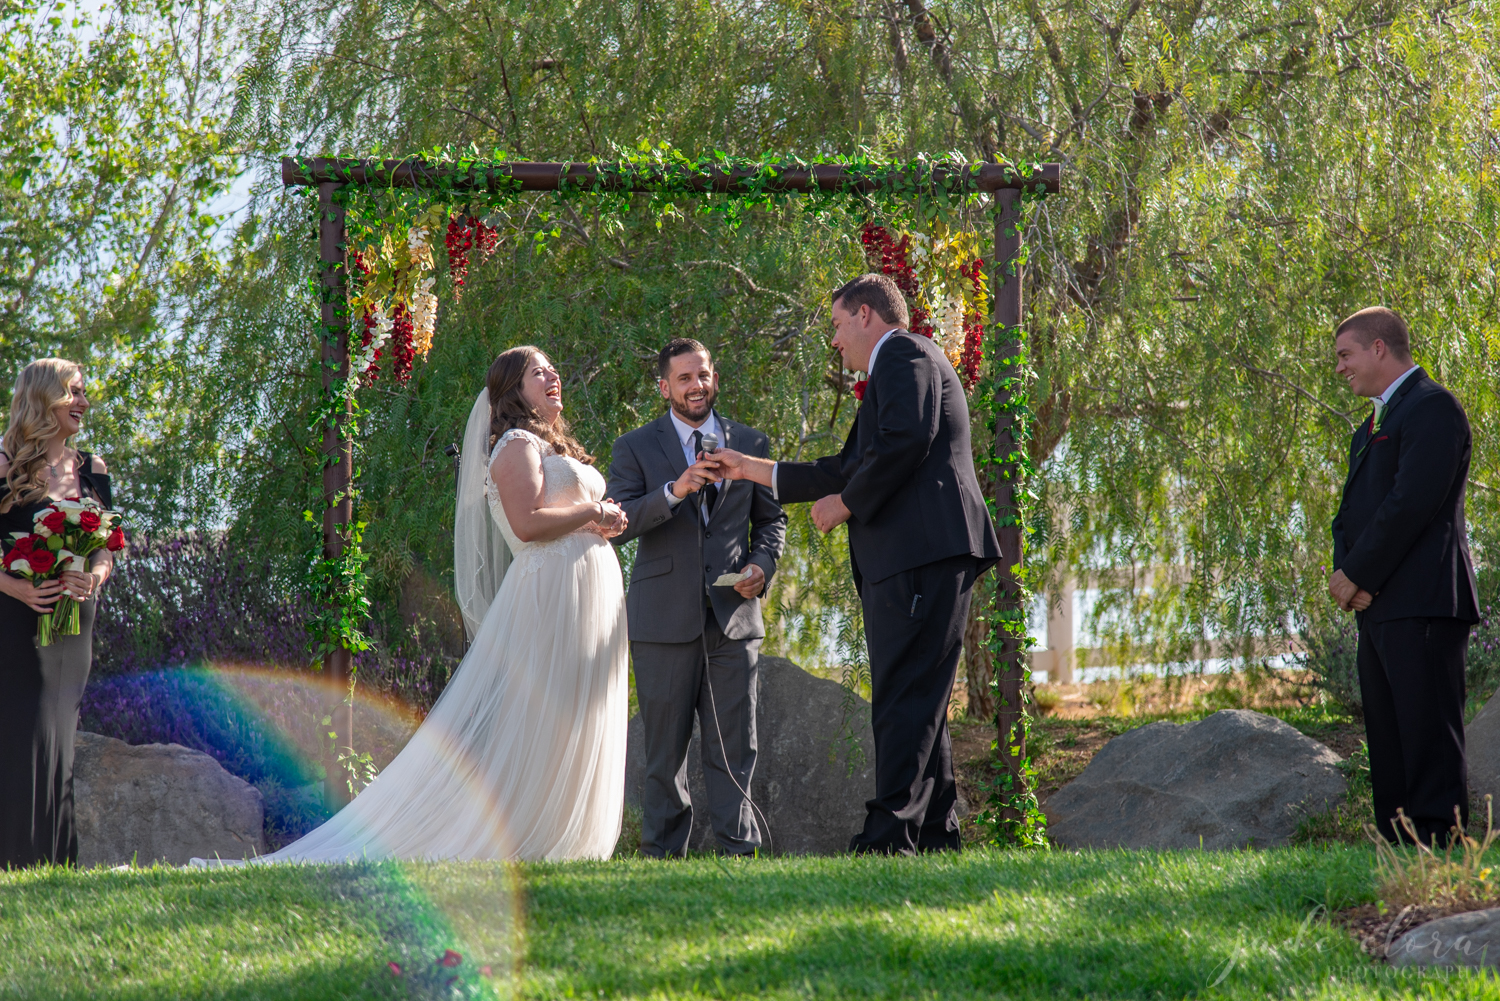 Glendale-Wedding-Photographer-Blog-Jade-Elora-064-2.jpg